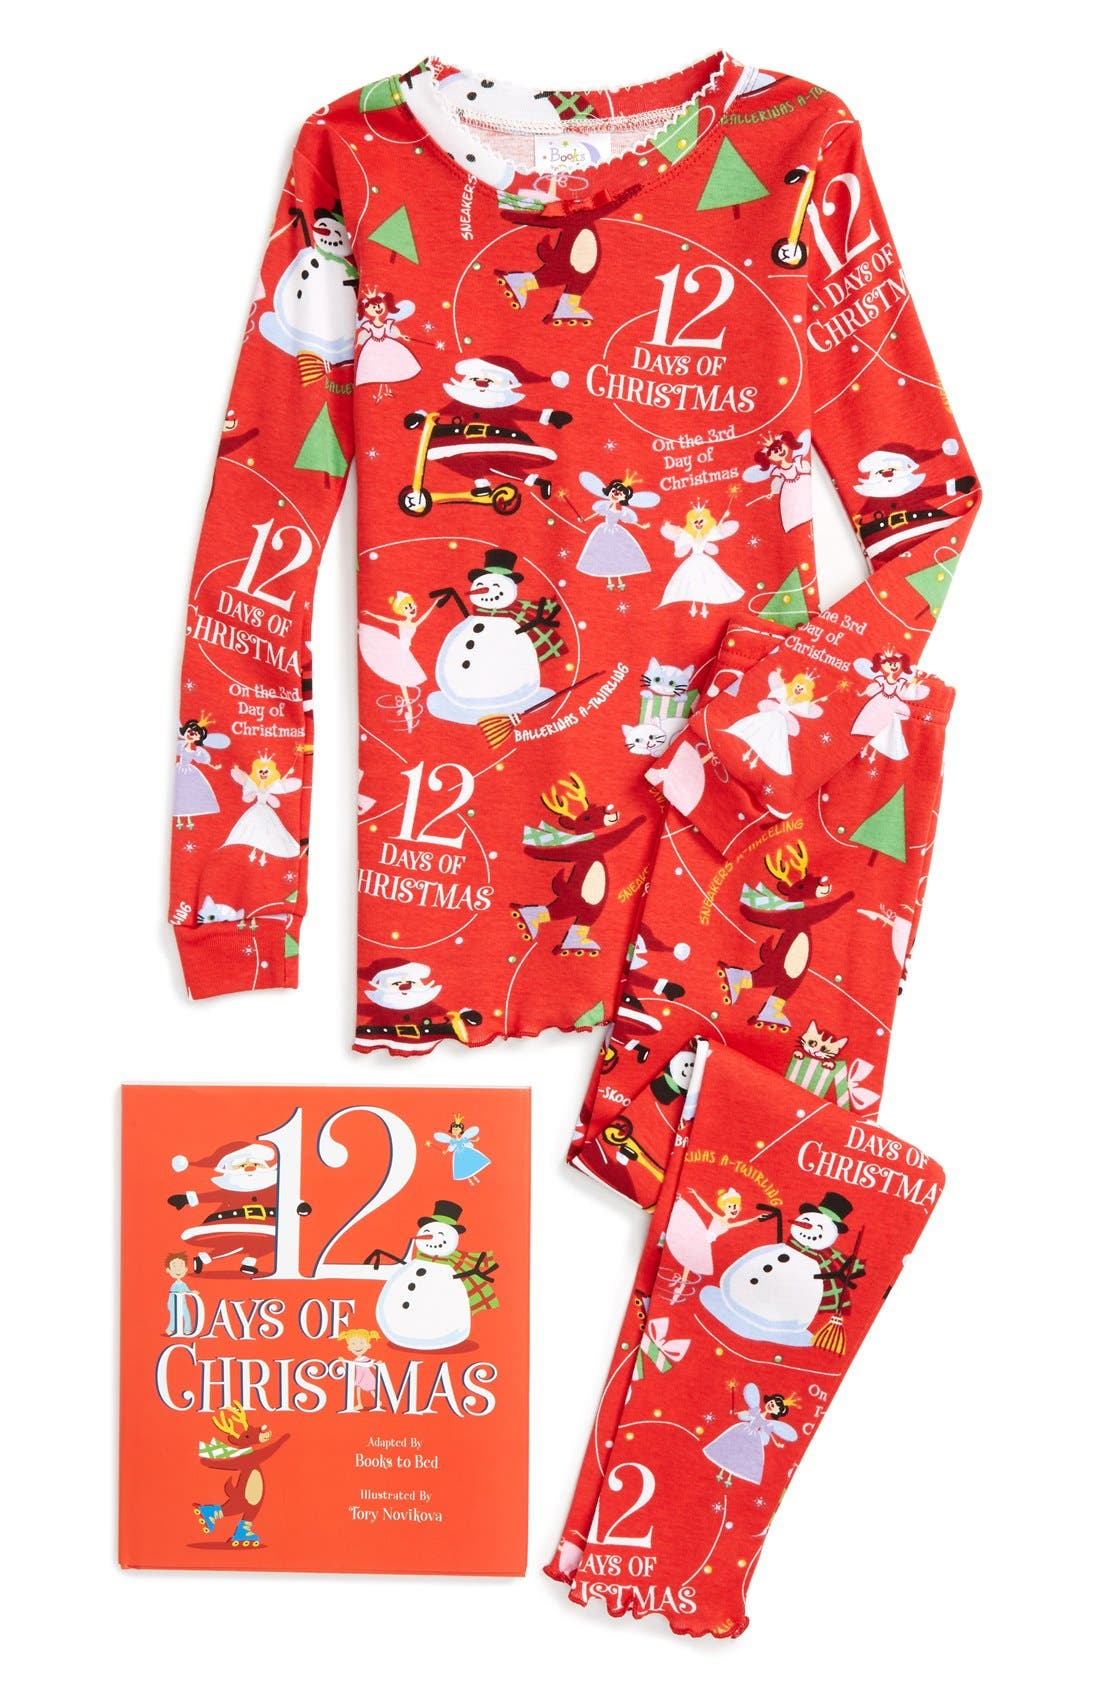 12 Days of Christmas Fitted Two-Piece Pajamas & Book Set,                             Main thumbnail 1, color,                             600